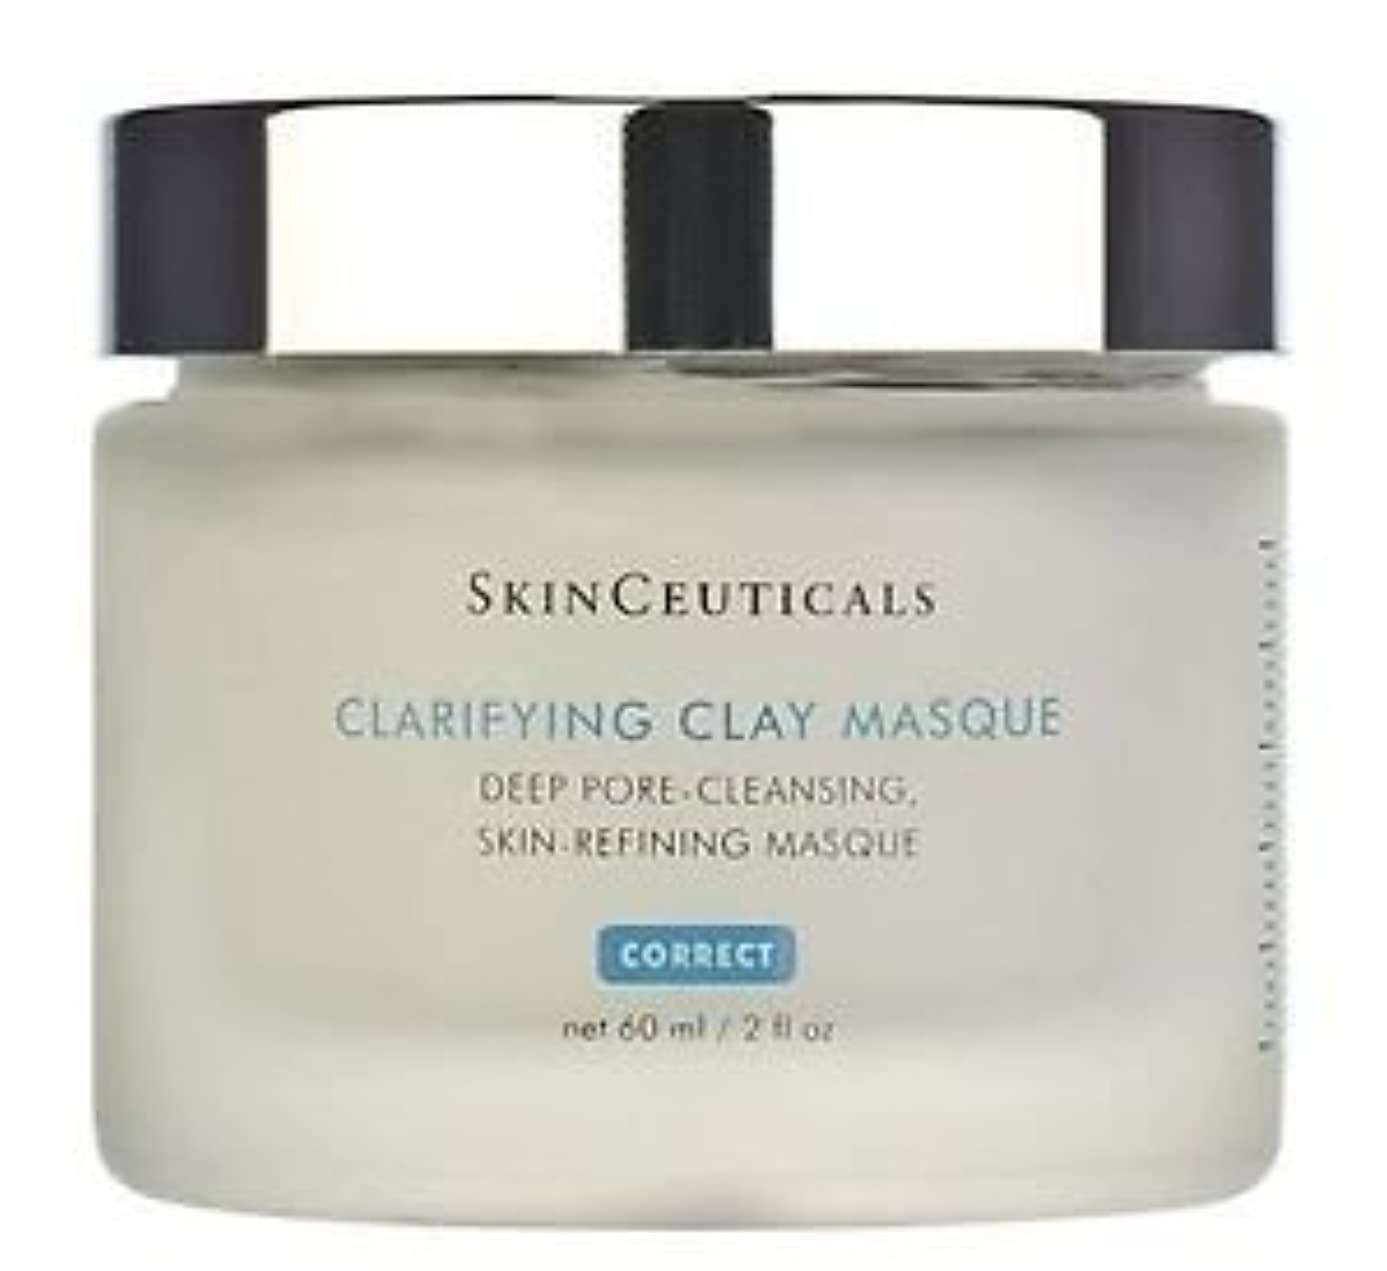 Skinceuticals Clarifying Clay Masque, 60ml Love Your Skin From United Kingdom